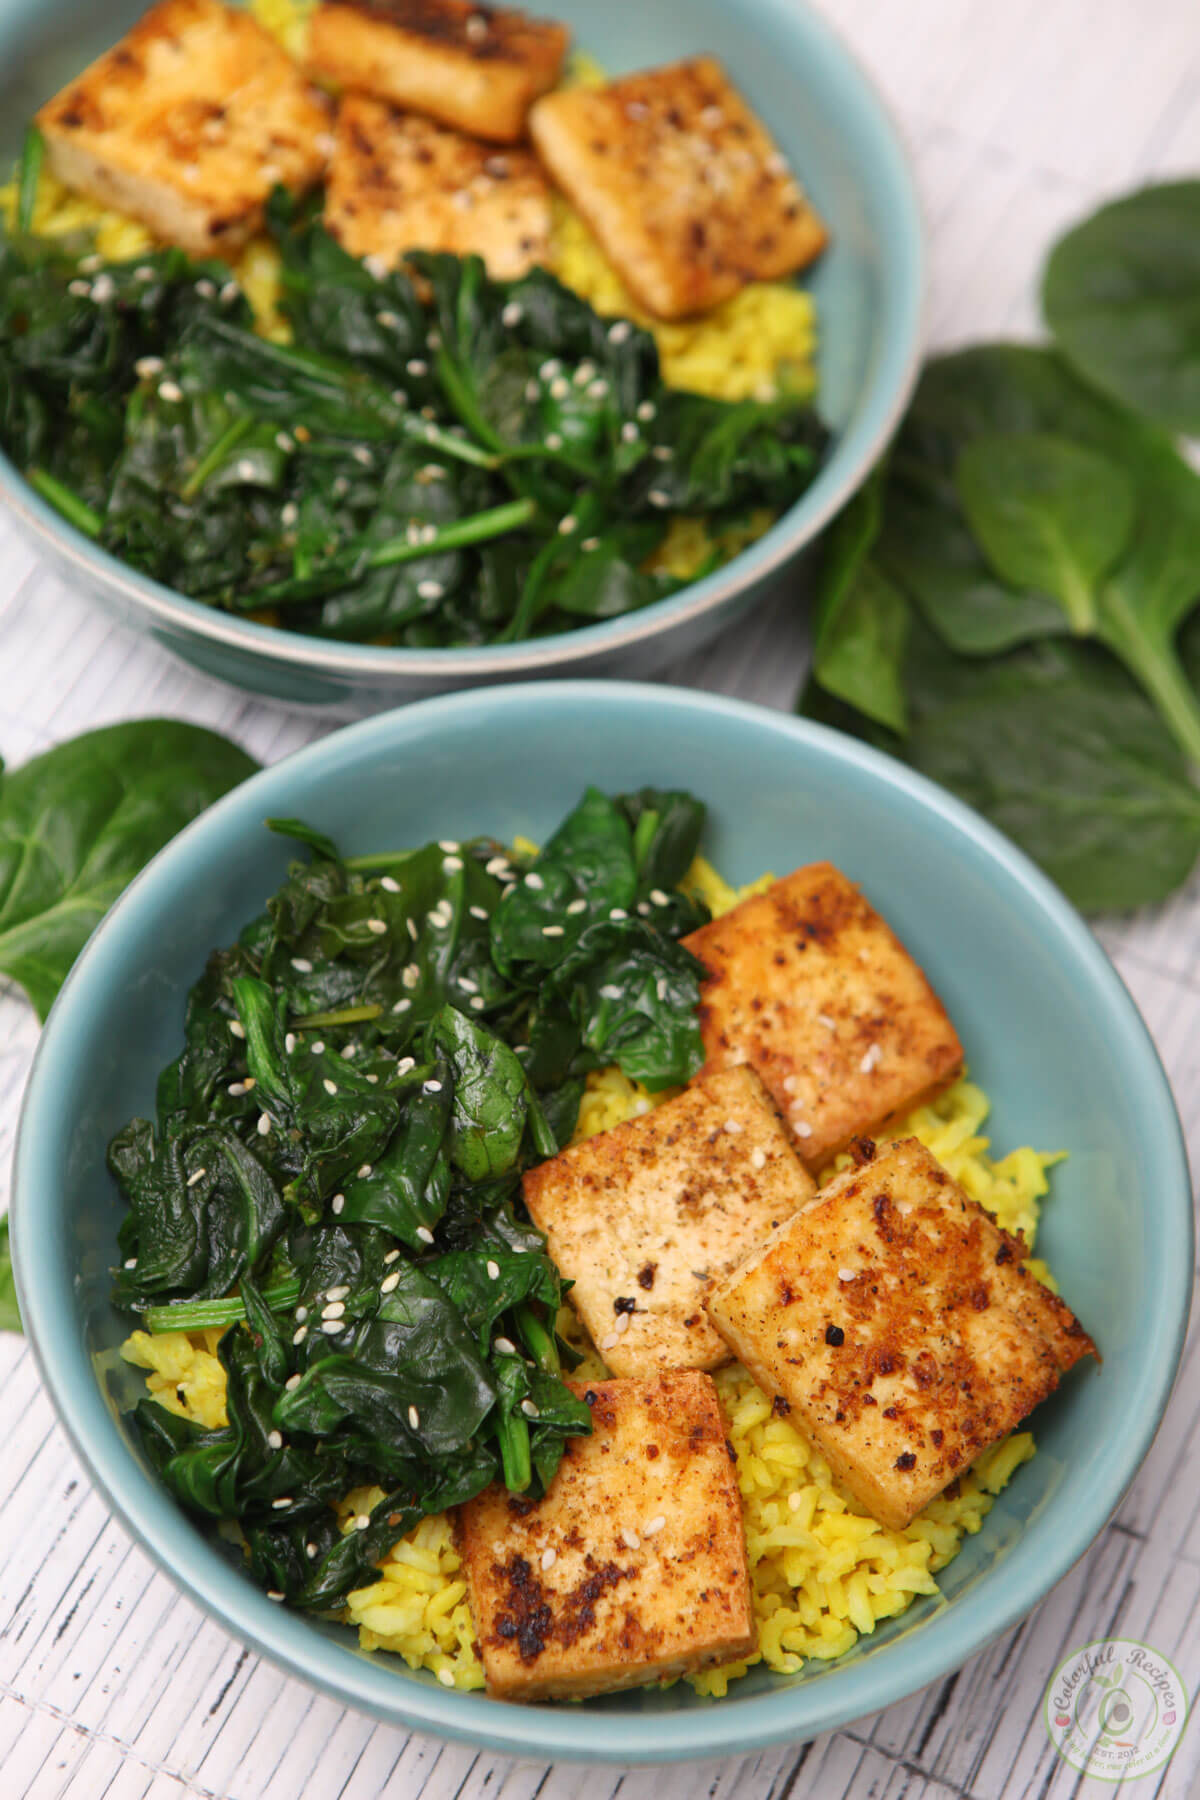 Vegan Spinach Tofu With Turmeric Rice